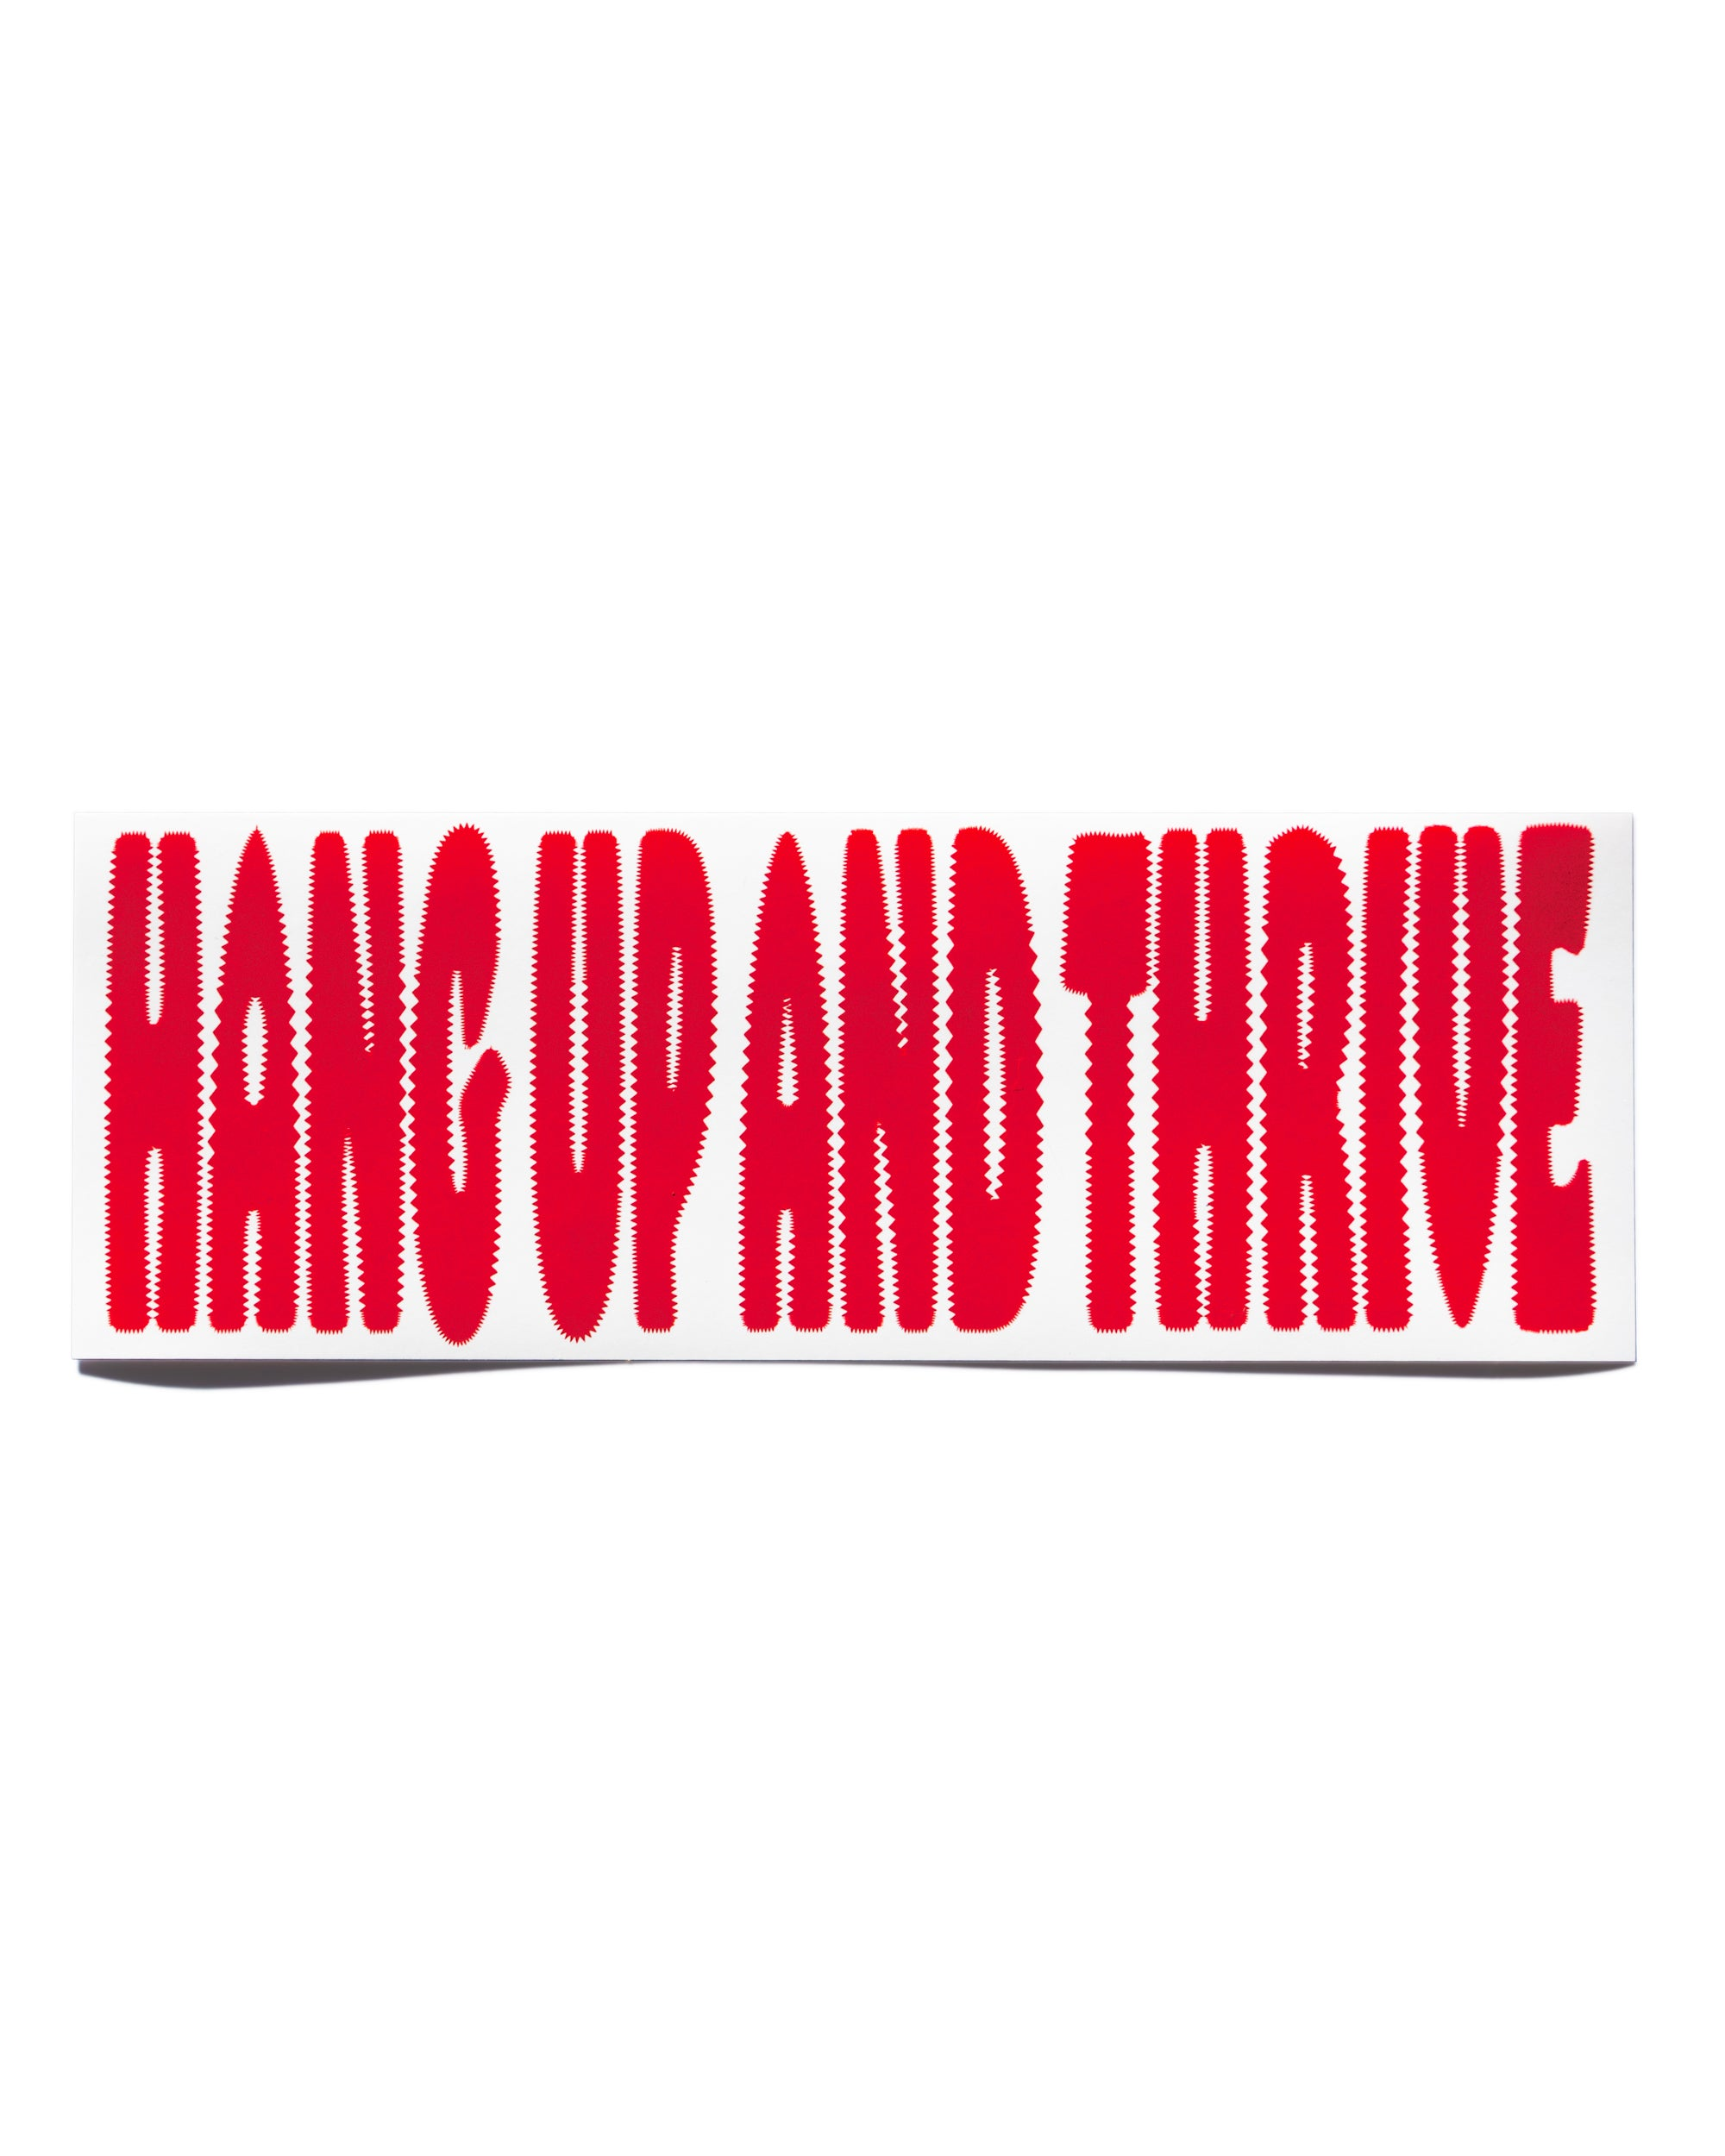 Summerland - Hang up and thrive- bumper sticker